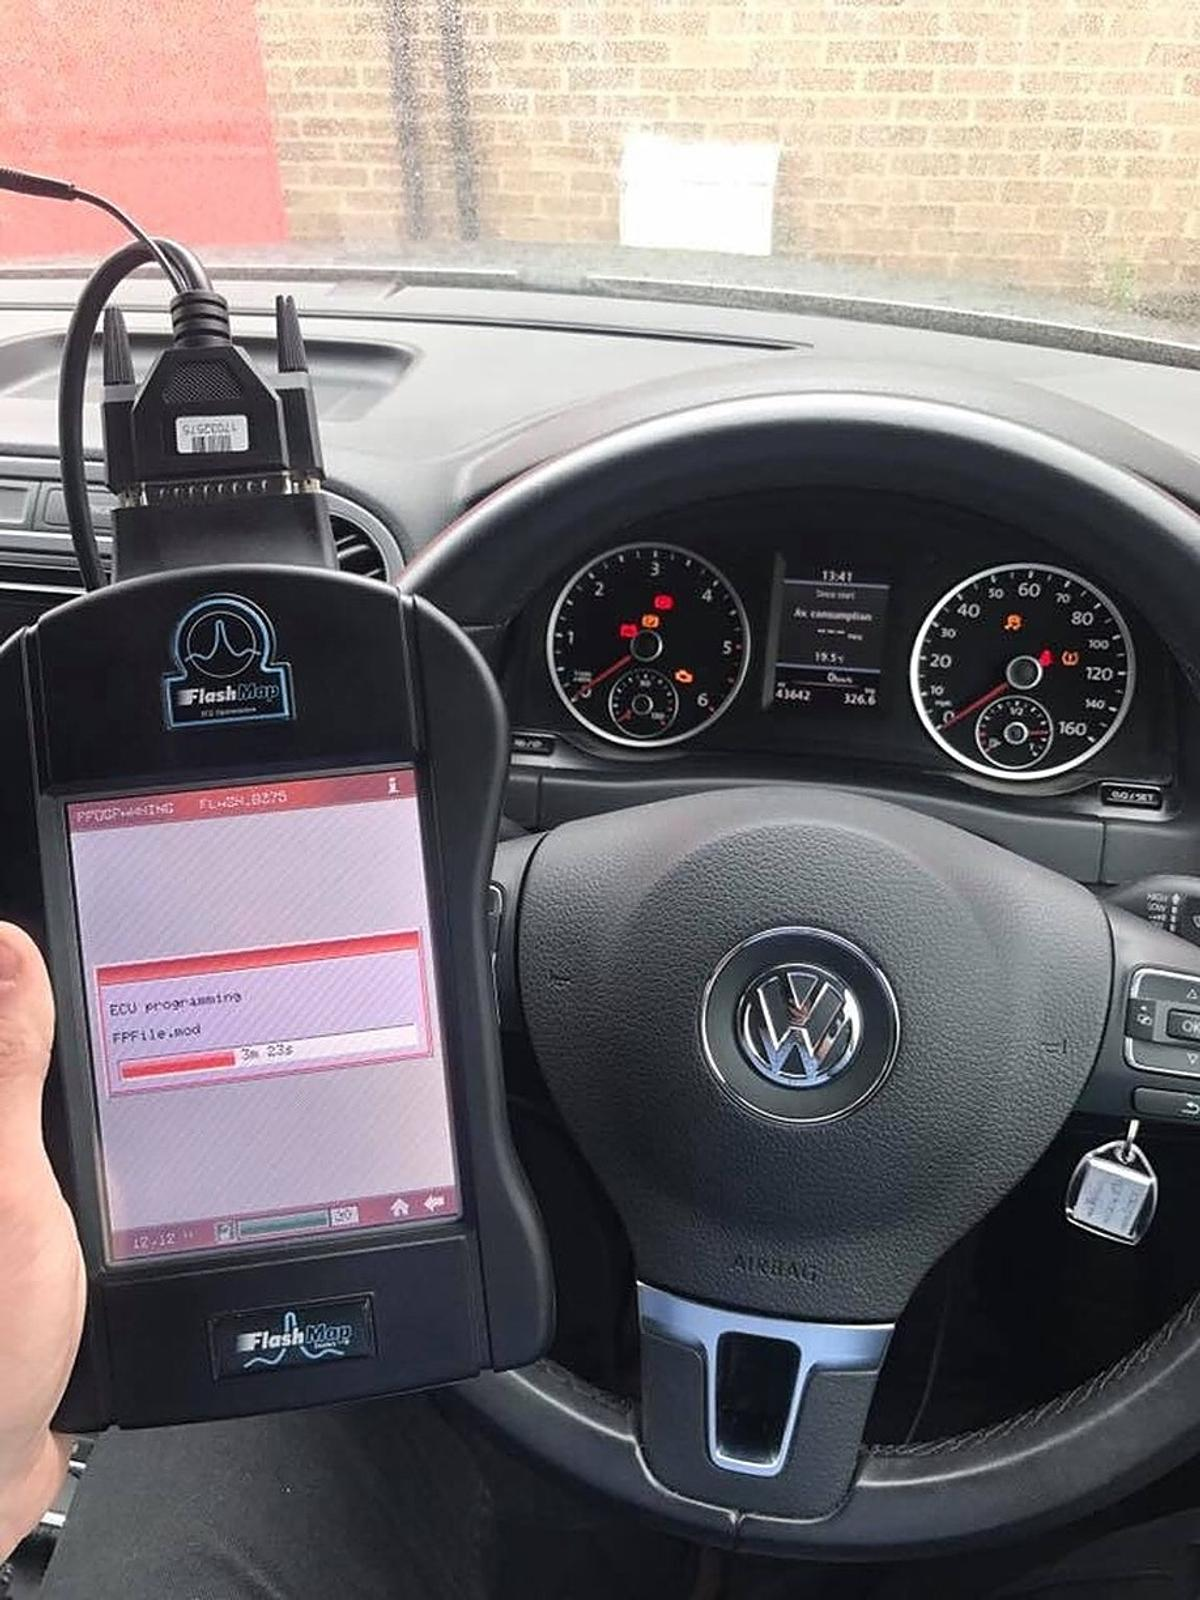 Mobile ECU Remapping and Tuning in LE10 Hinckley for £165 00 for